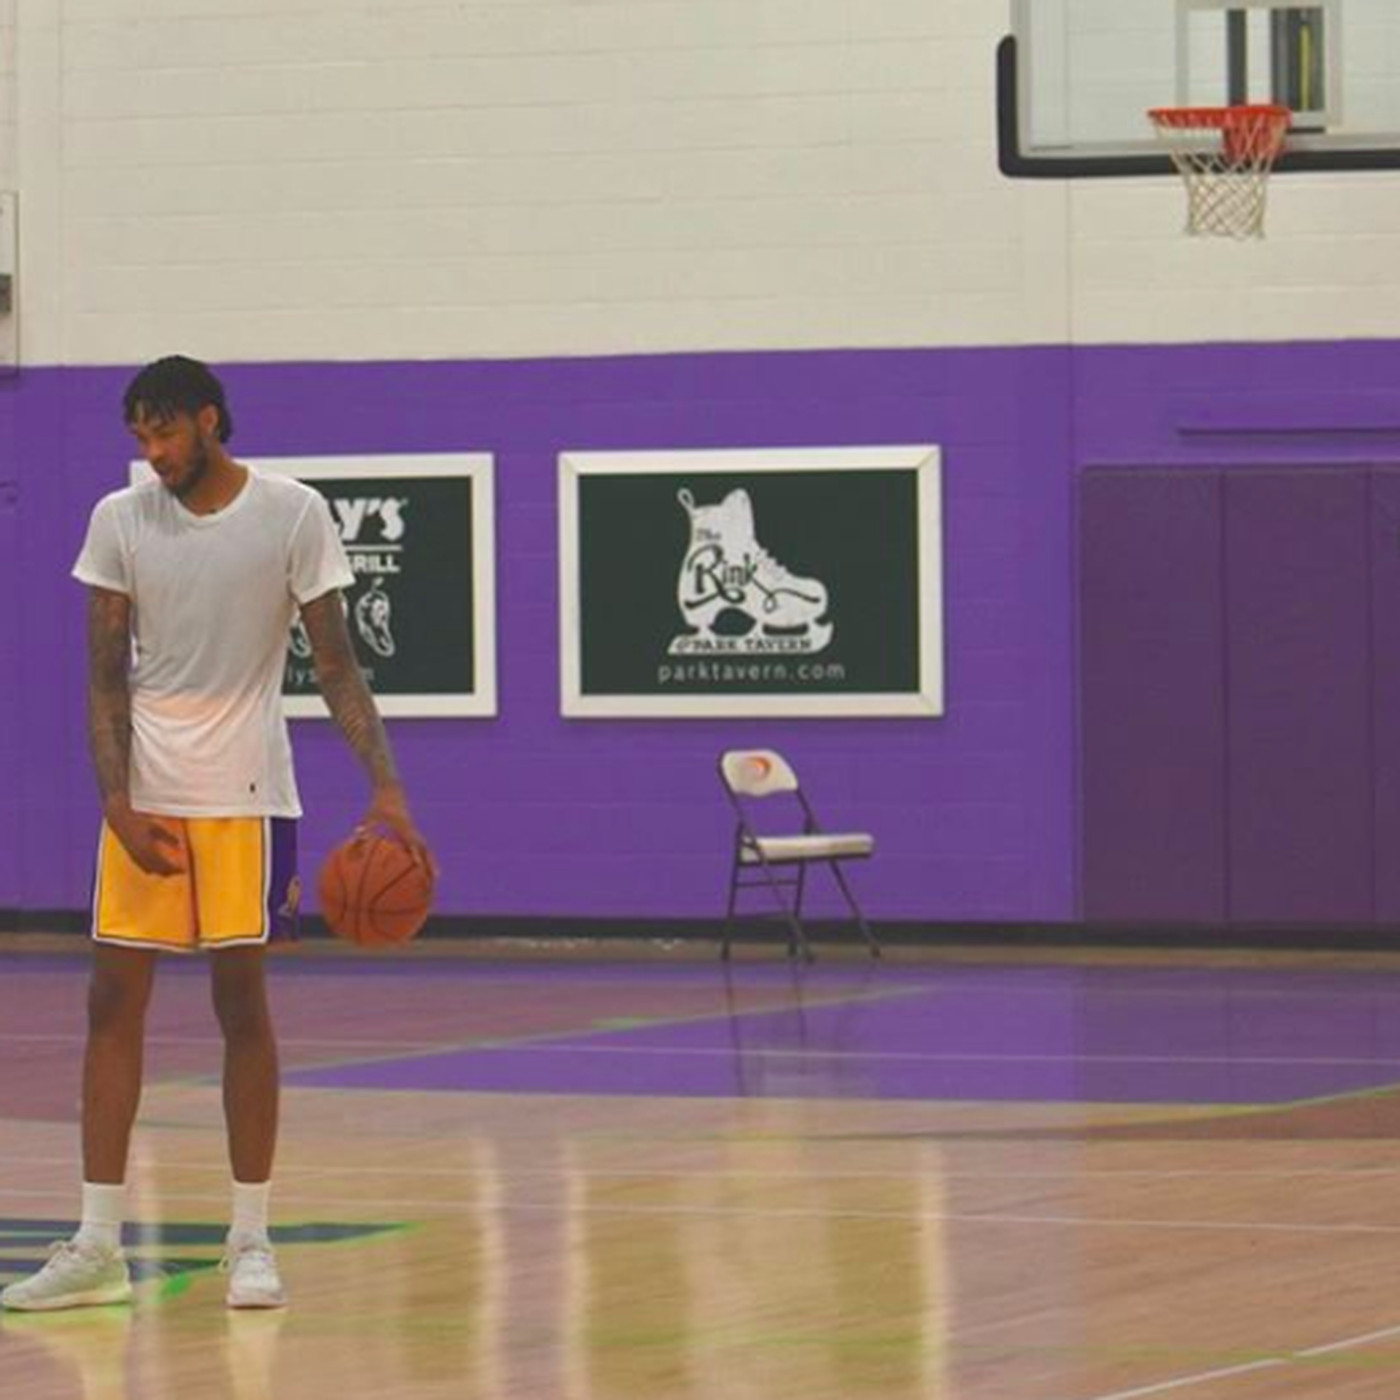 fbbdc260879 Lakers forward Brandon Ingram continues impressive offseason workouts -  Silver Screen and Roll